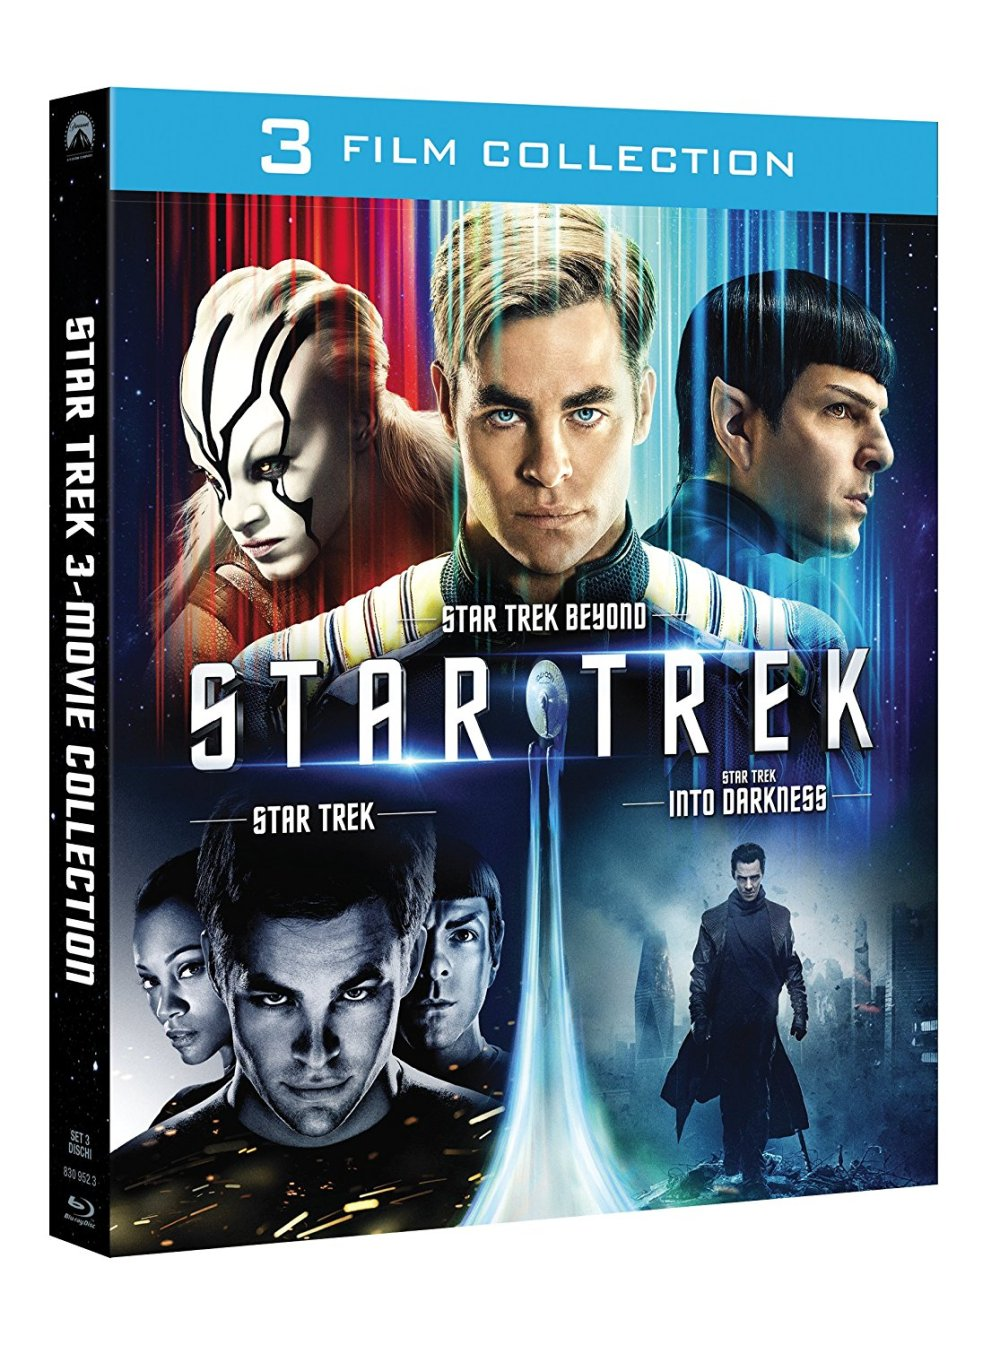 star-trek-beyond-blu-ray-collection-abrams_